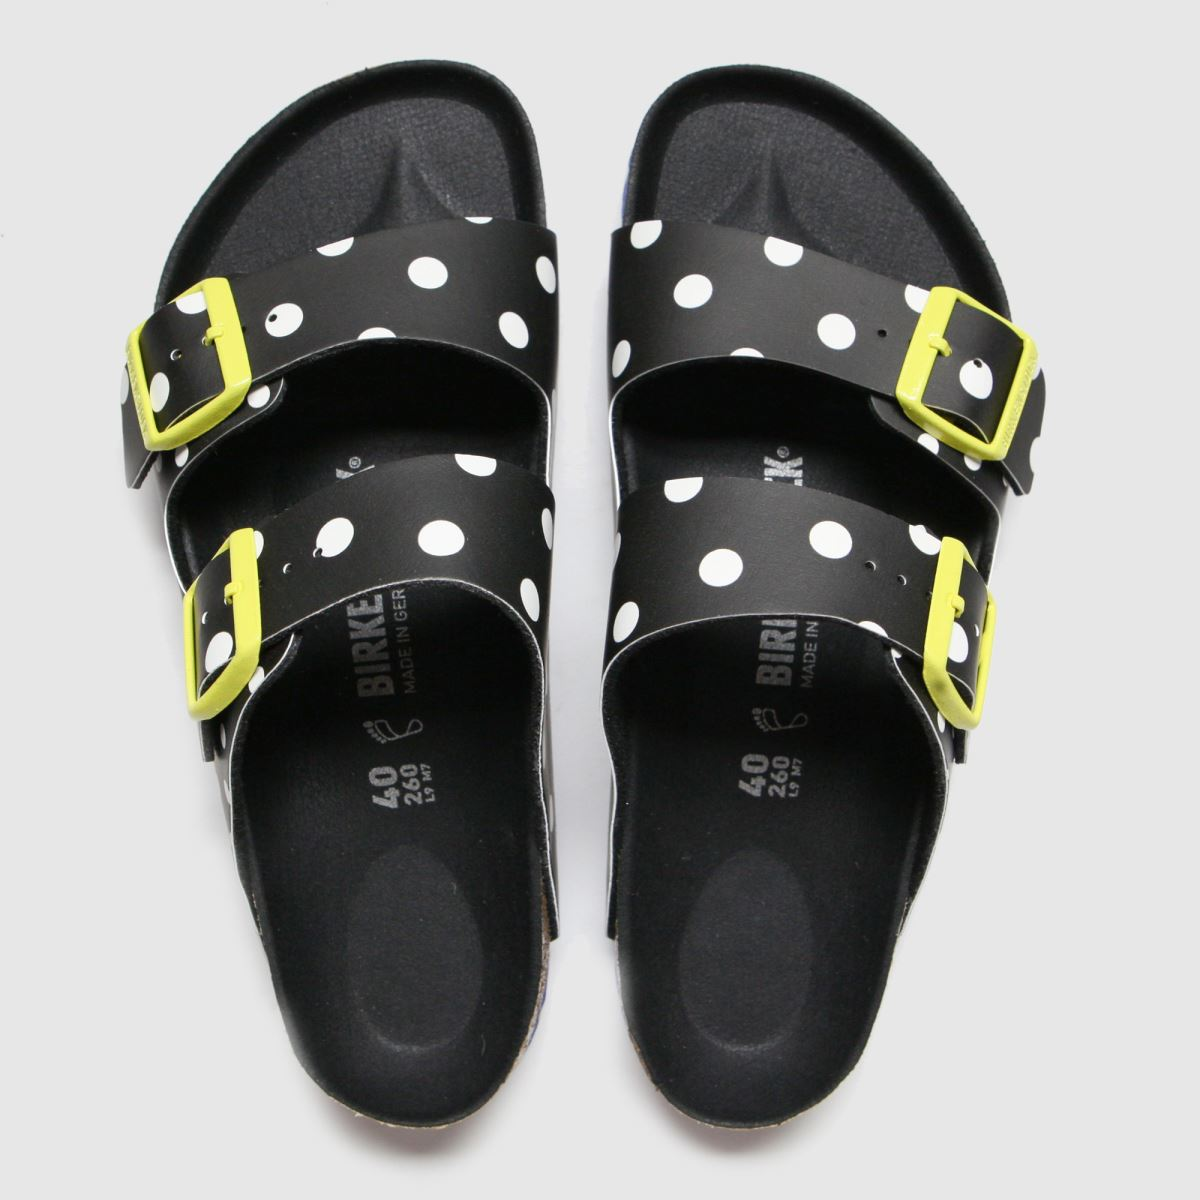 Birkenstock Black & White Arizona Sandals